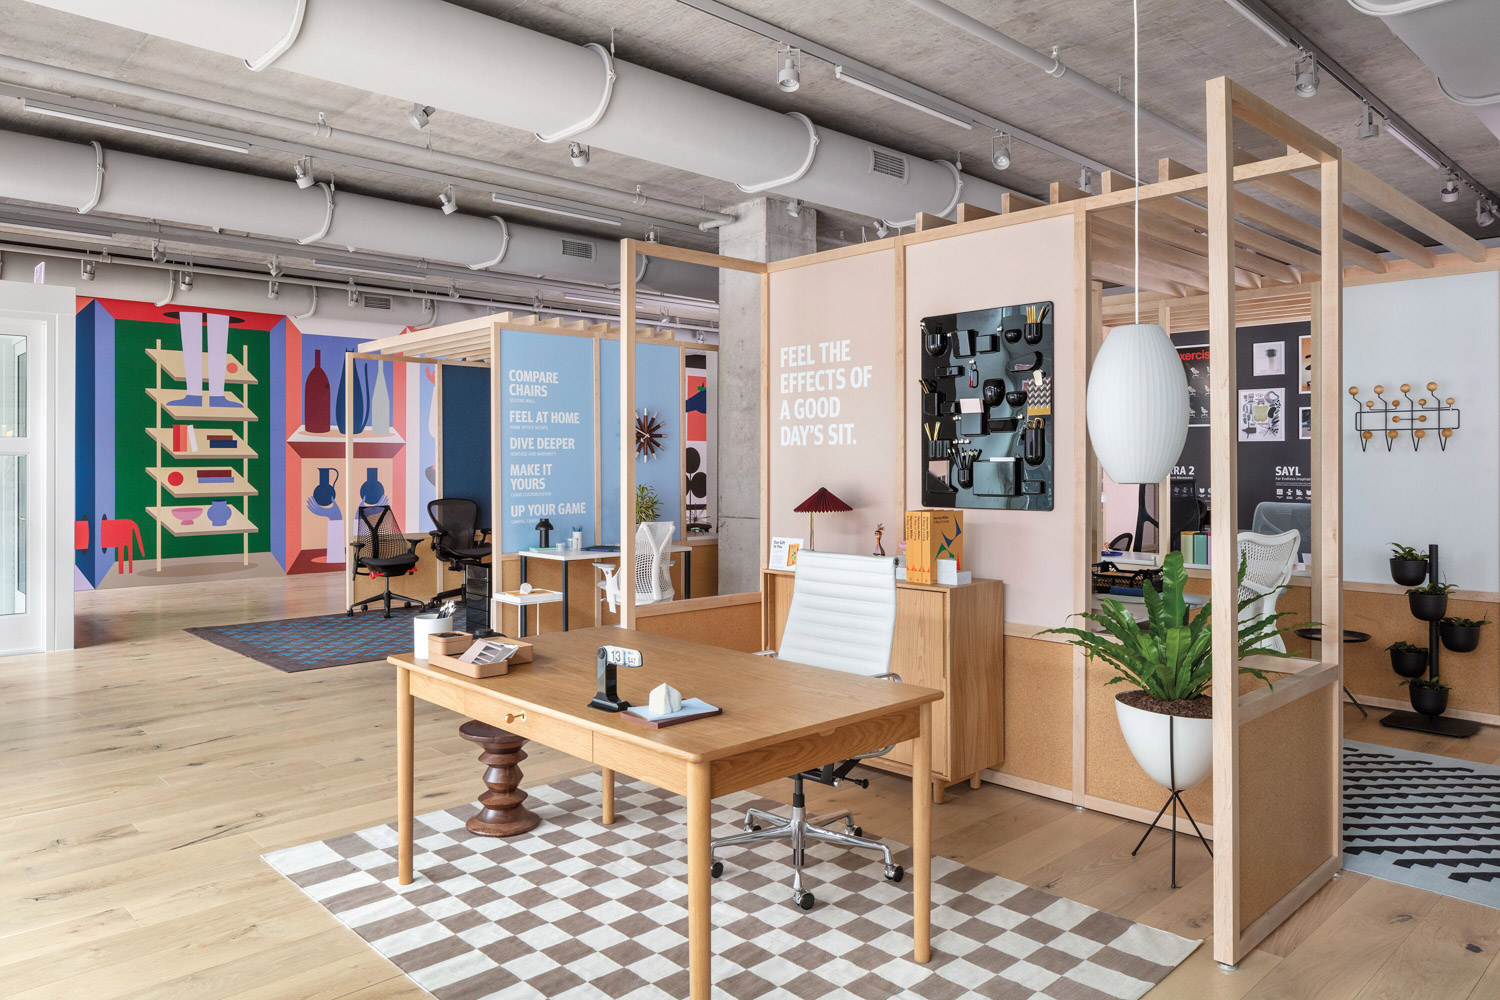 Showroom space with wooden desk and white chair on checked carpet